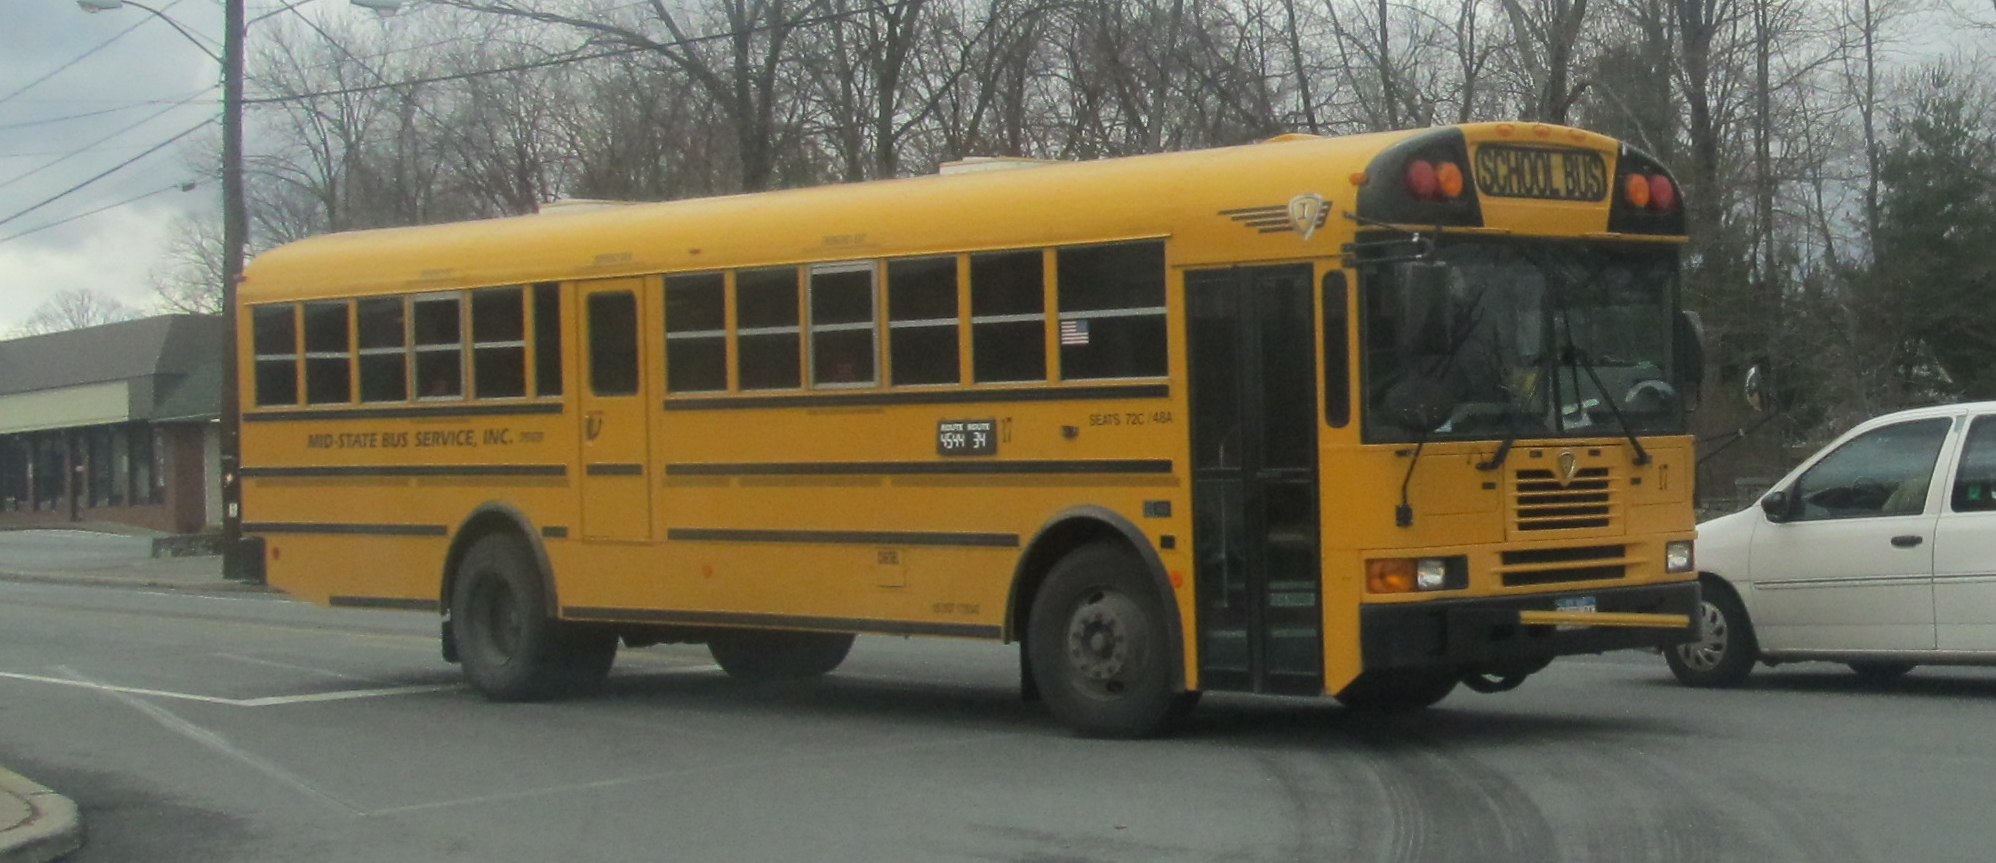 File Mid State Bus Service 17 Jpg Wikimedia Commons